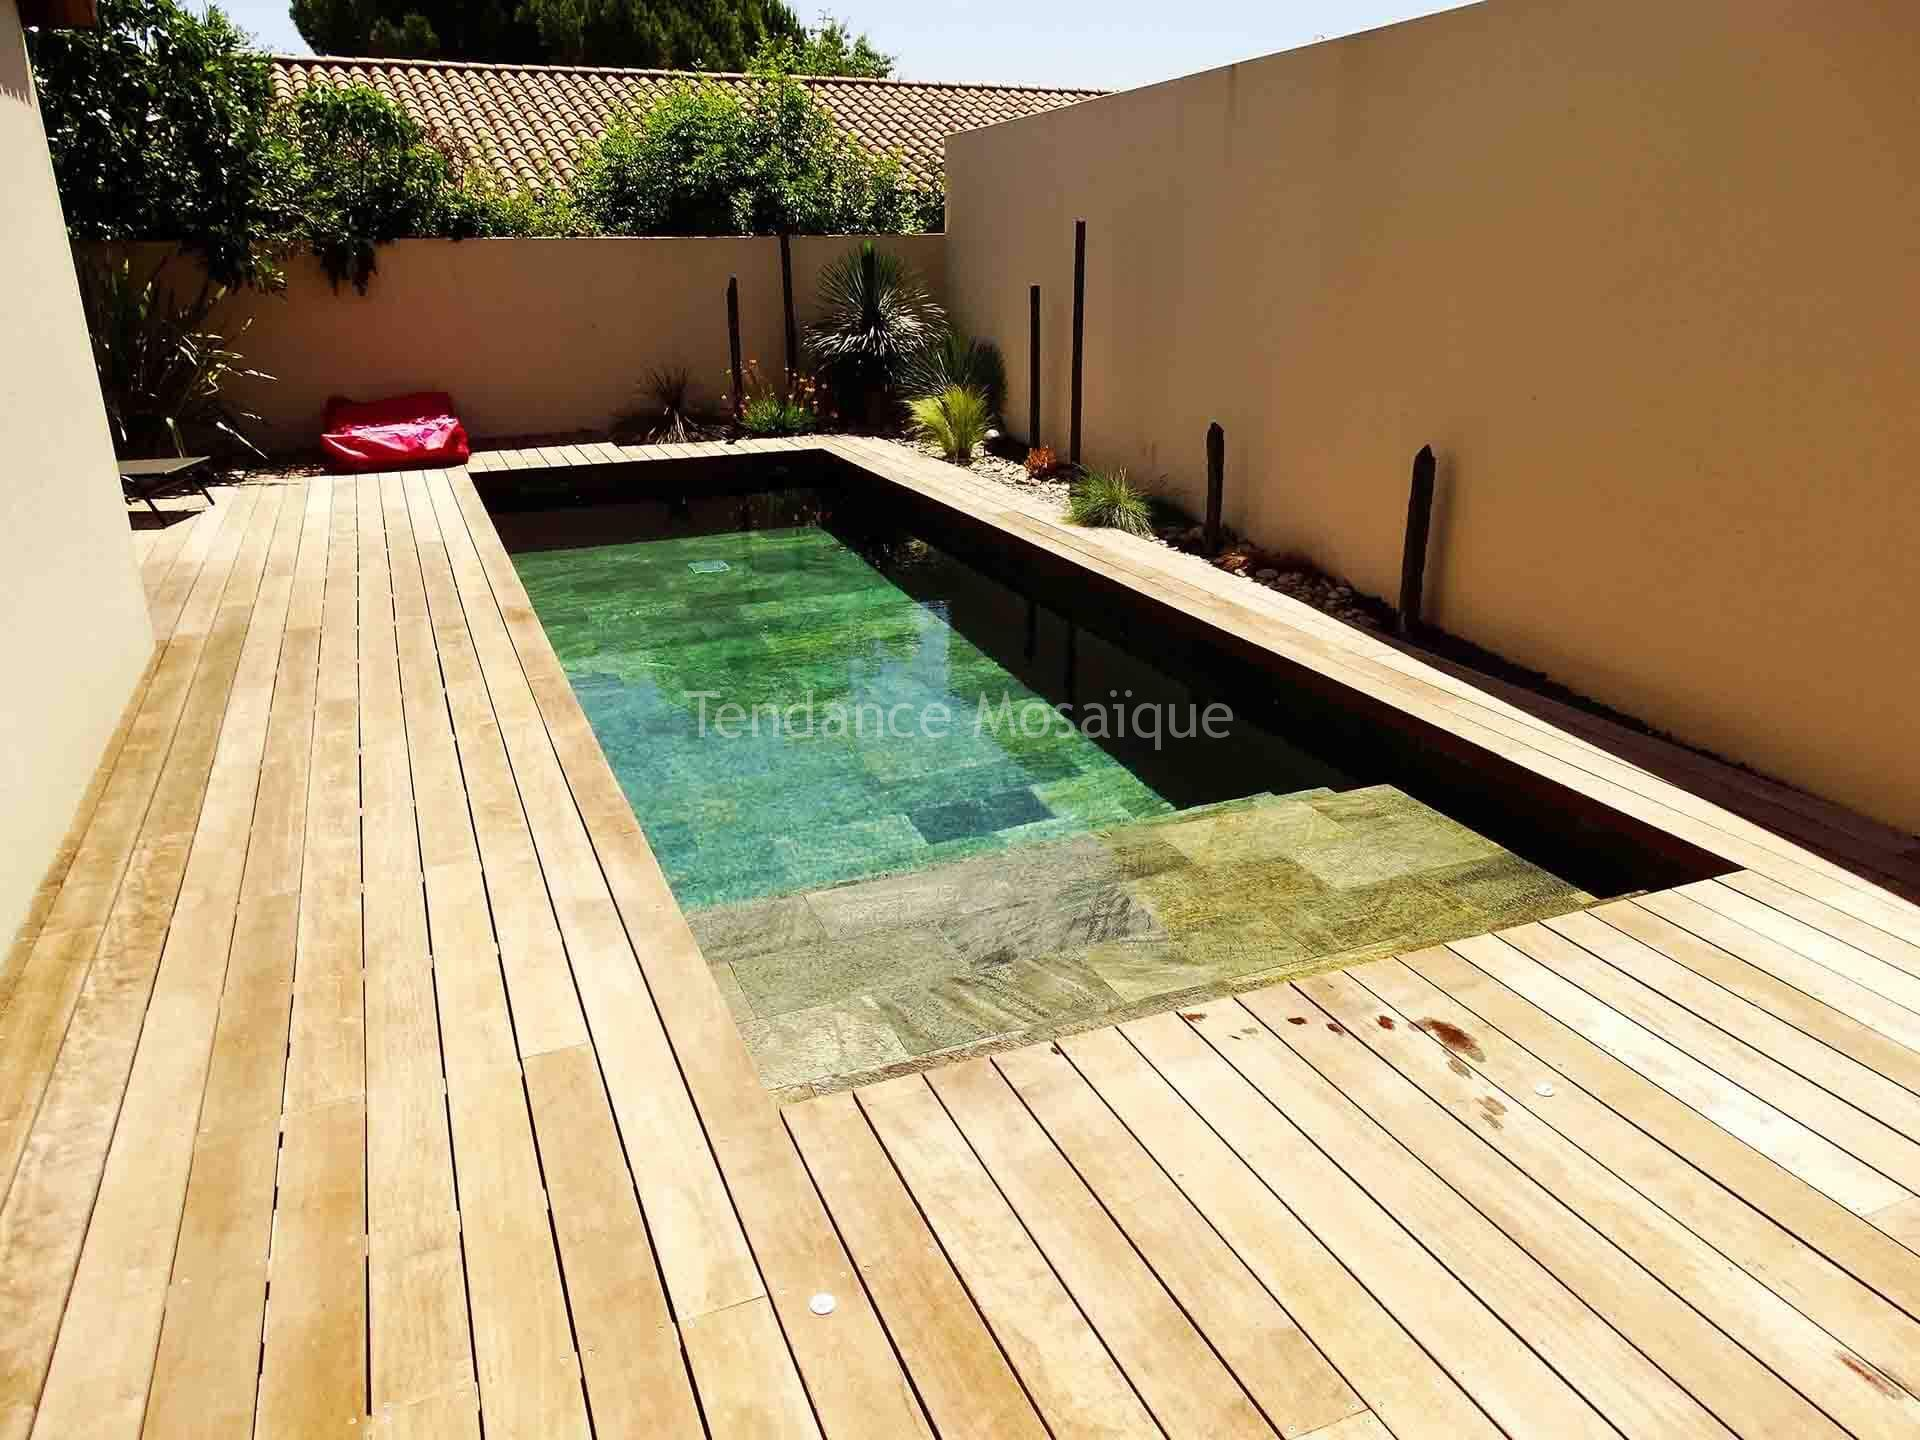 Piscine en pierre naturelle quartzite r f rence silver for Piscine en pierre naturelle